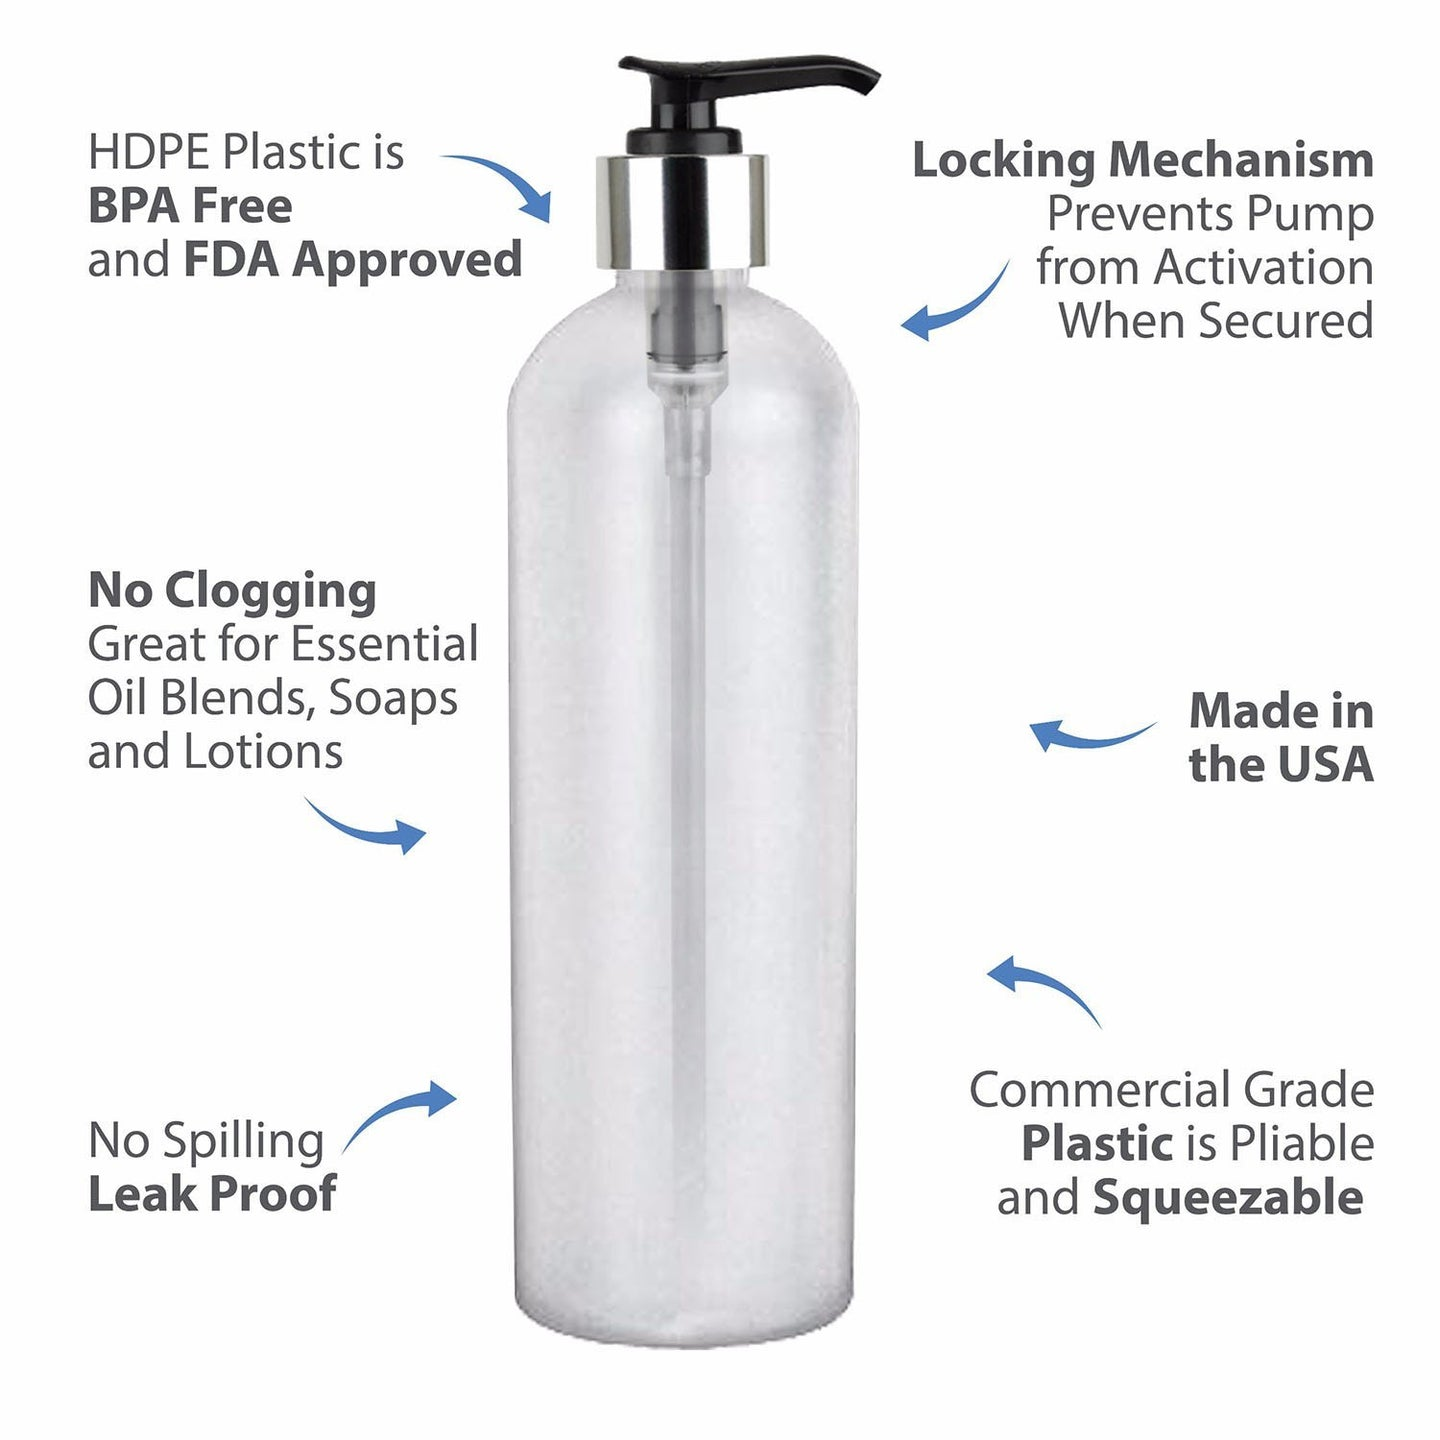 MoYo Natural Labs 16 oz Pump Dispenser, Empty Soap and Lotion Bottle with Locking Cap, BPA Free HDPE Plastic Containers for Essential Oils/Liquids (Pack of 6, Translucent White)